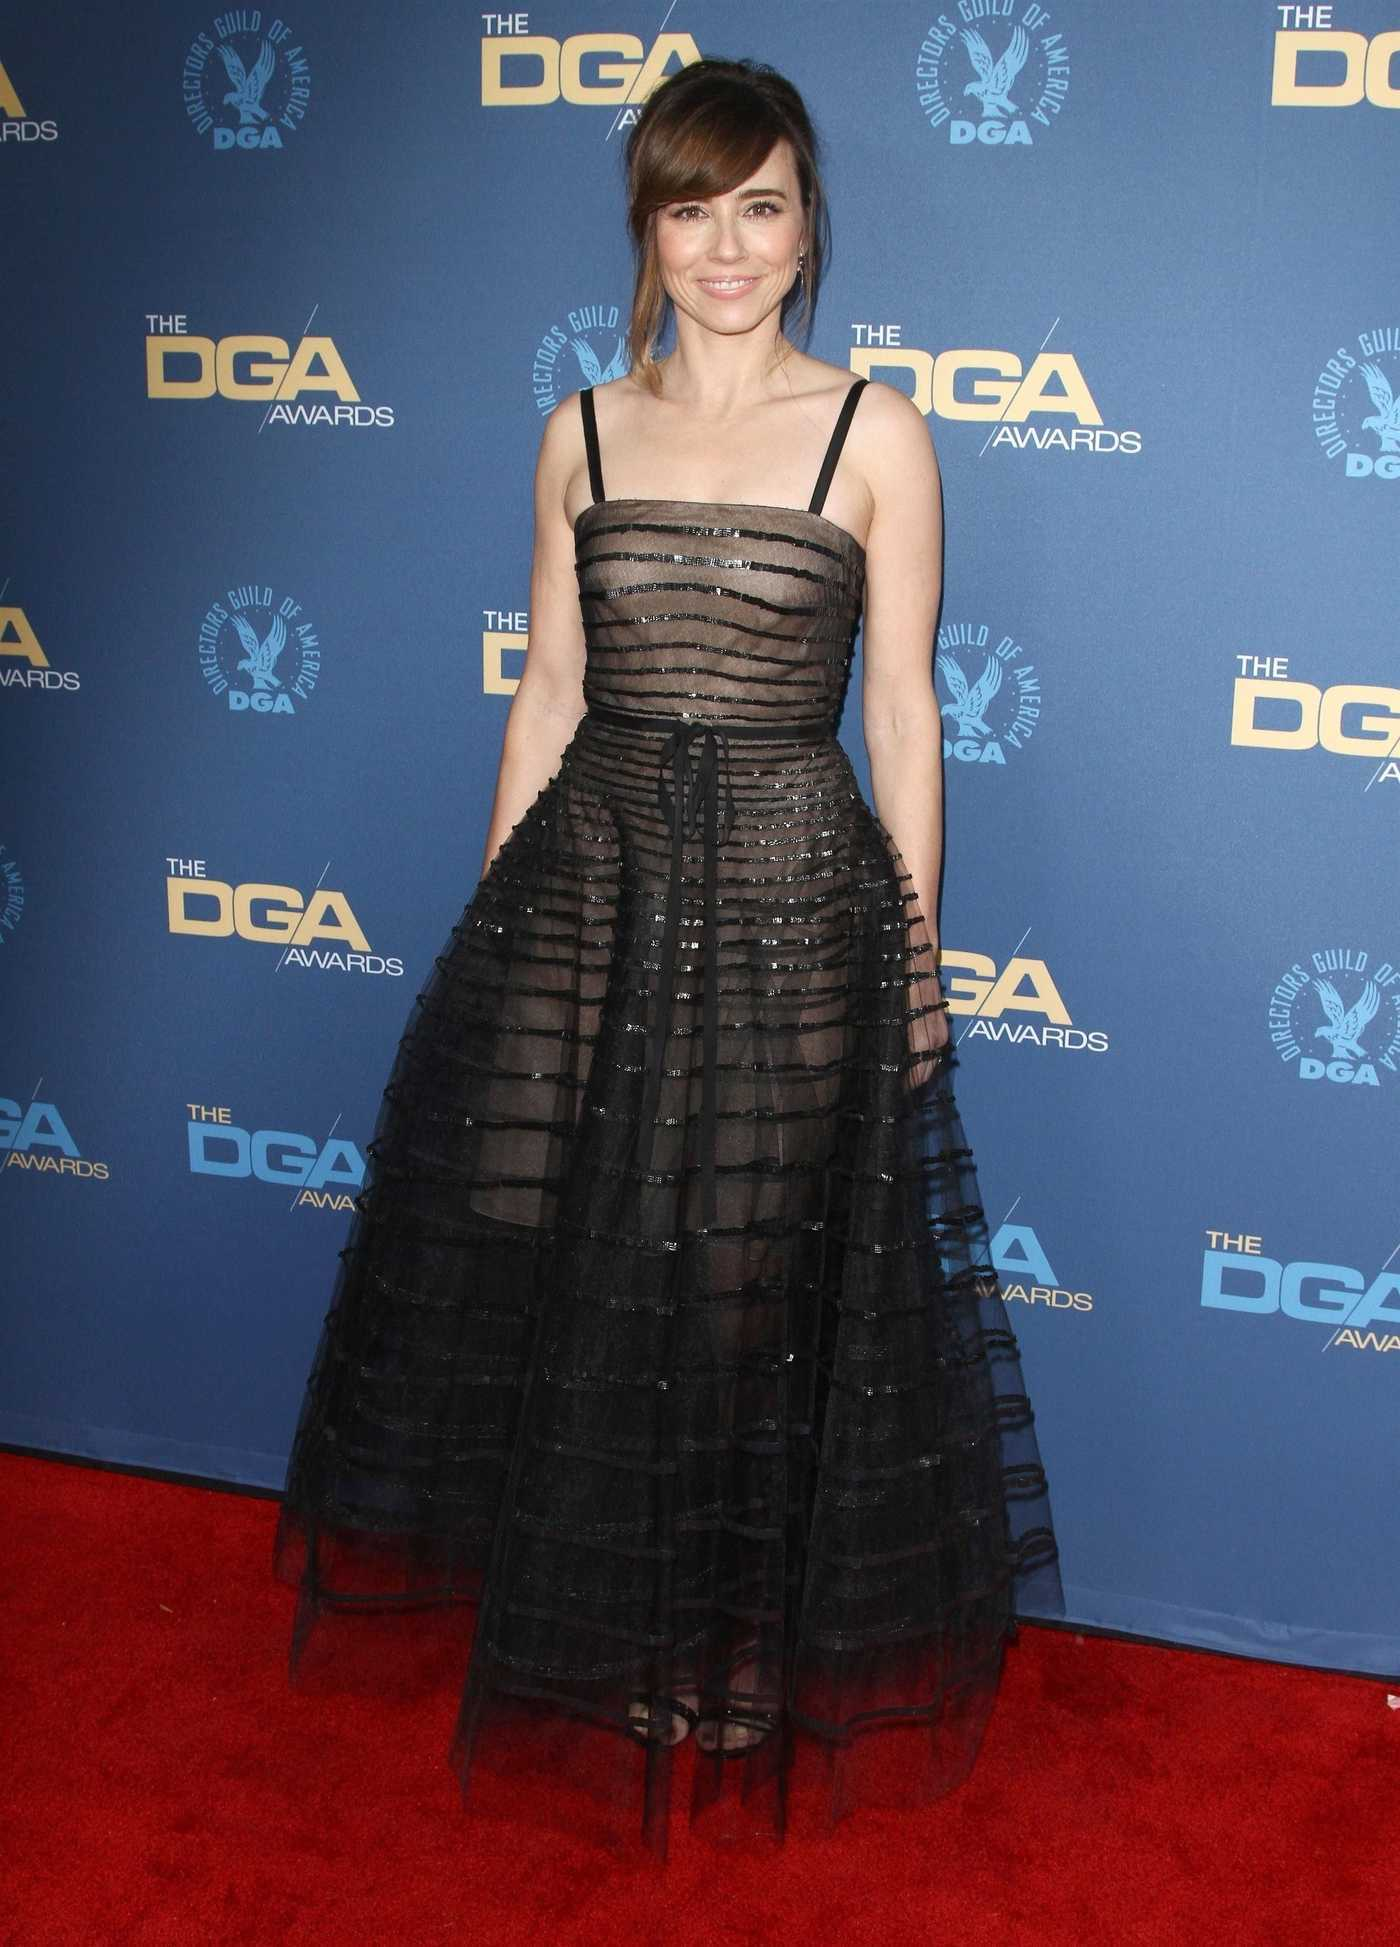 Linda Cardellini Attends the 71st Annual Directors Guild of America Awards in Hollywood 02/02/2019